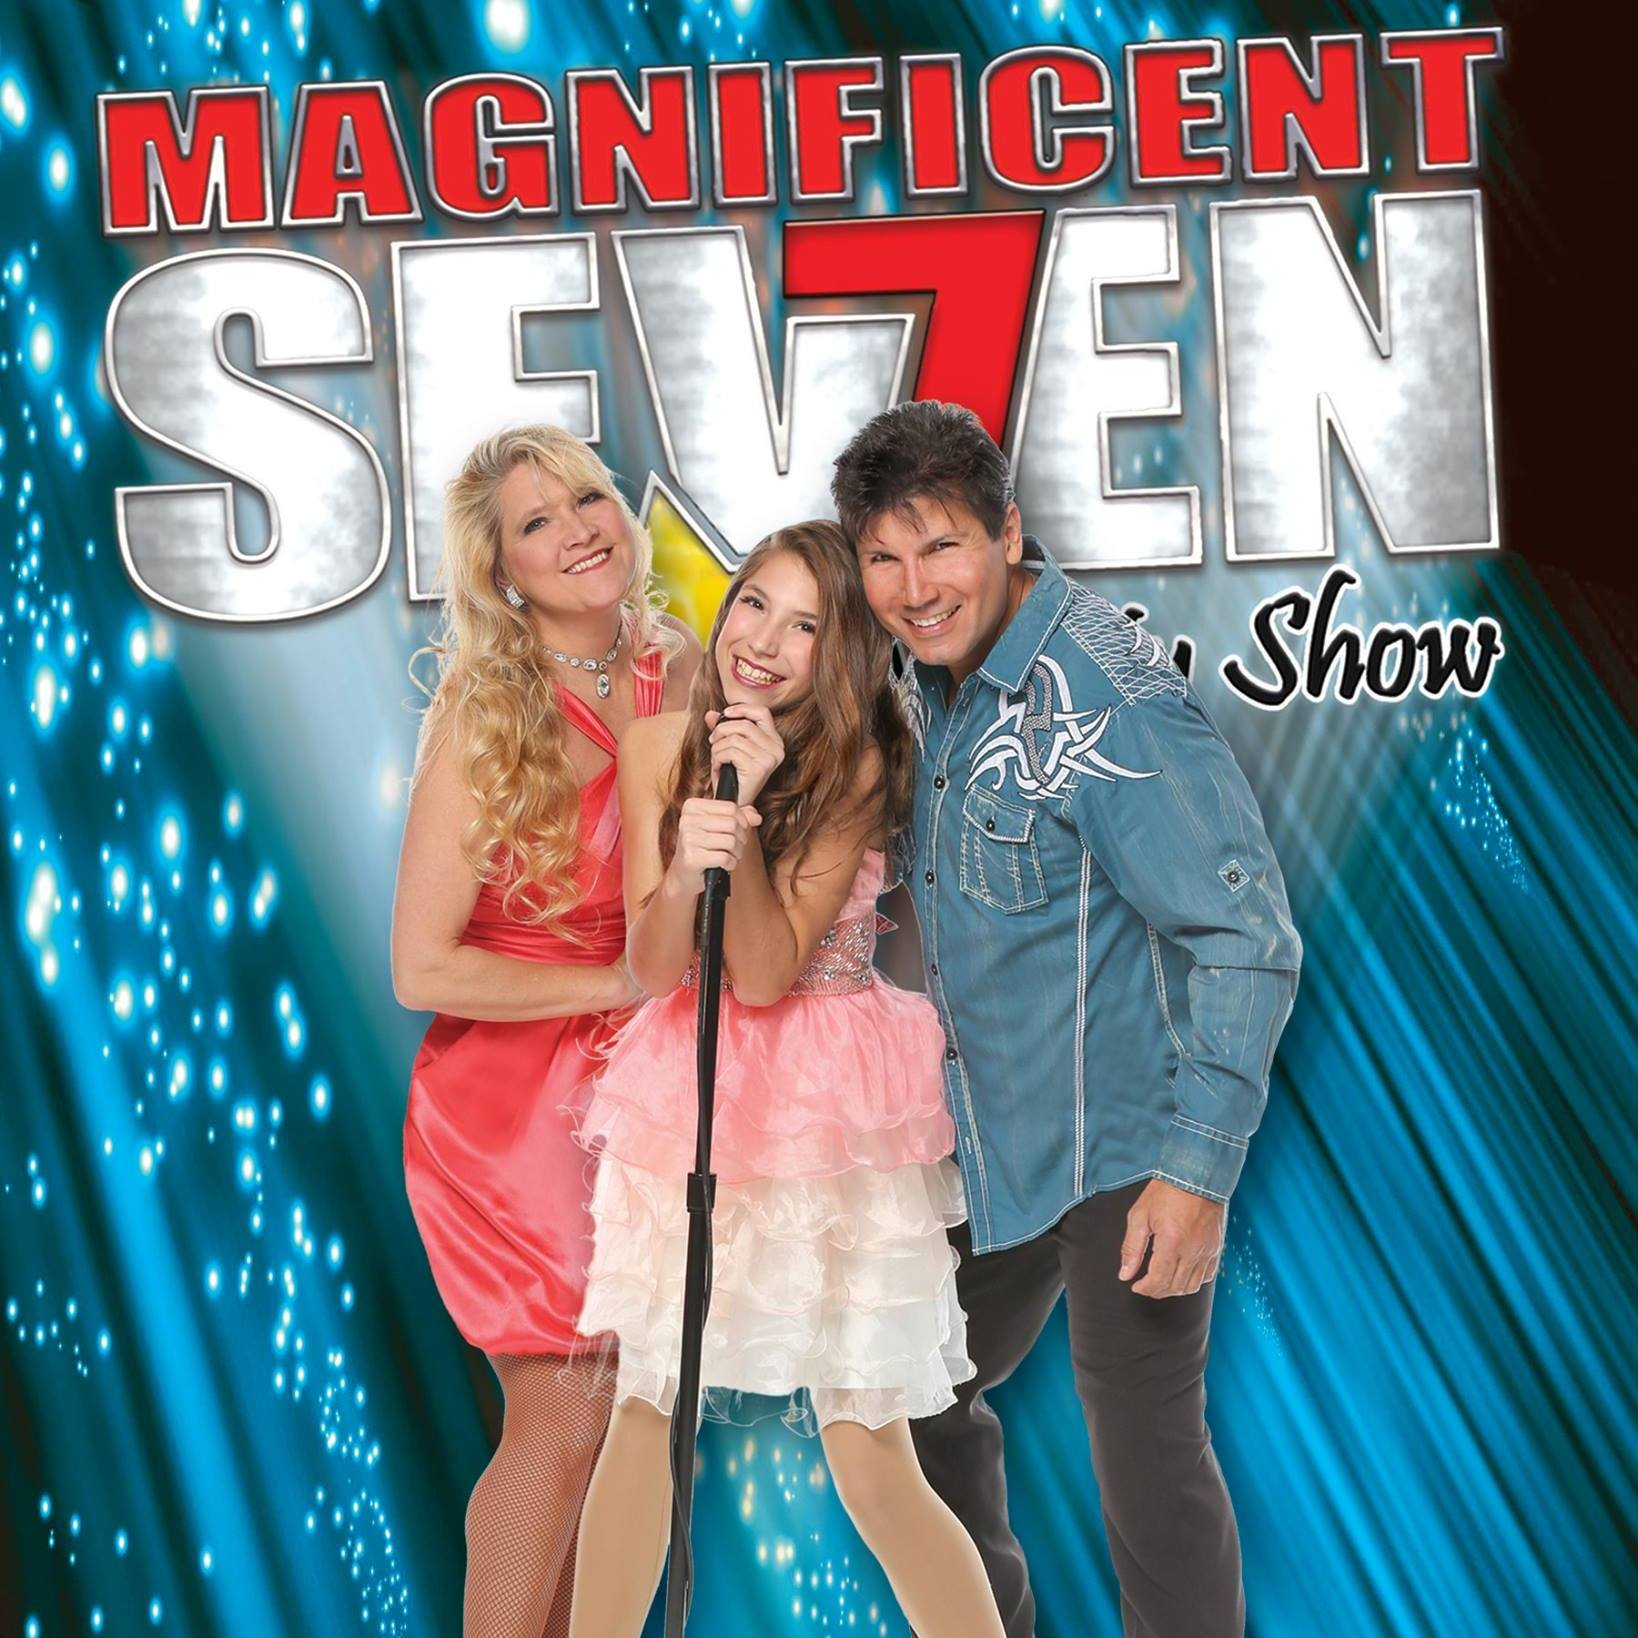 Magnificent_7_Variety_Show_Branson_MO